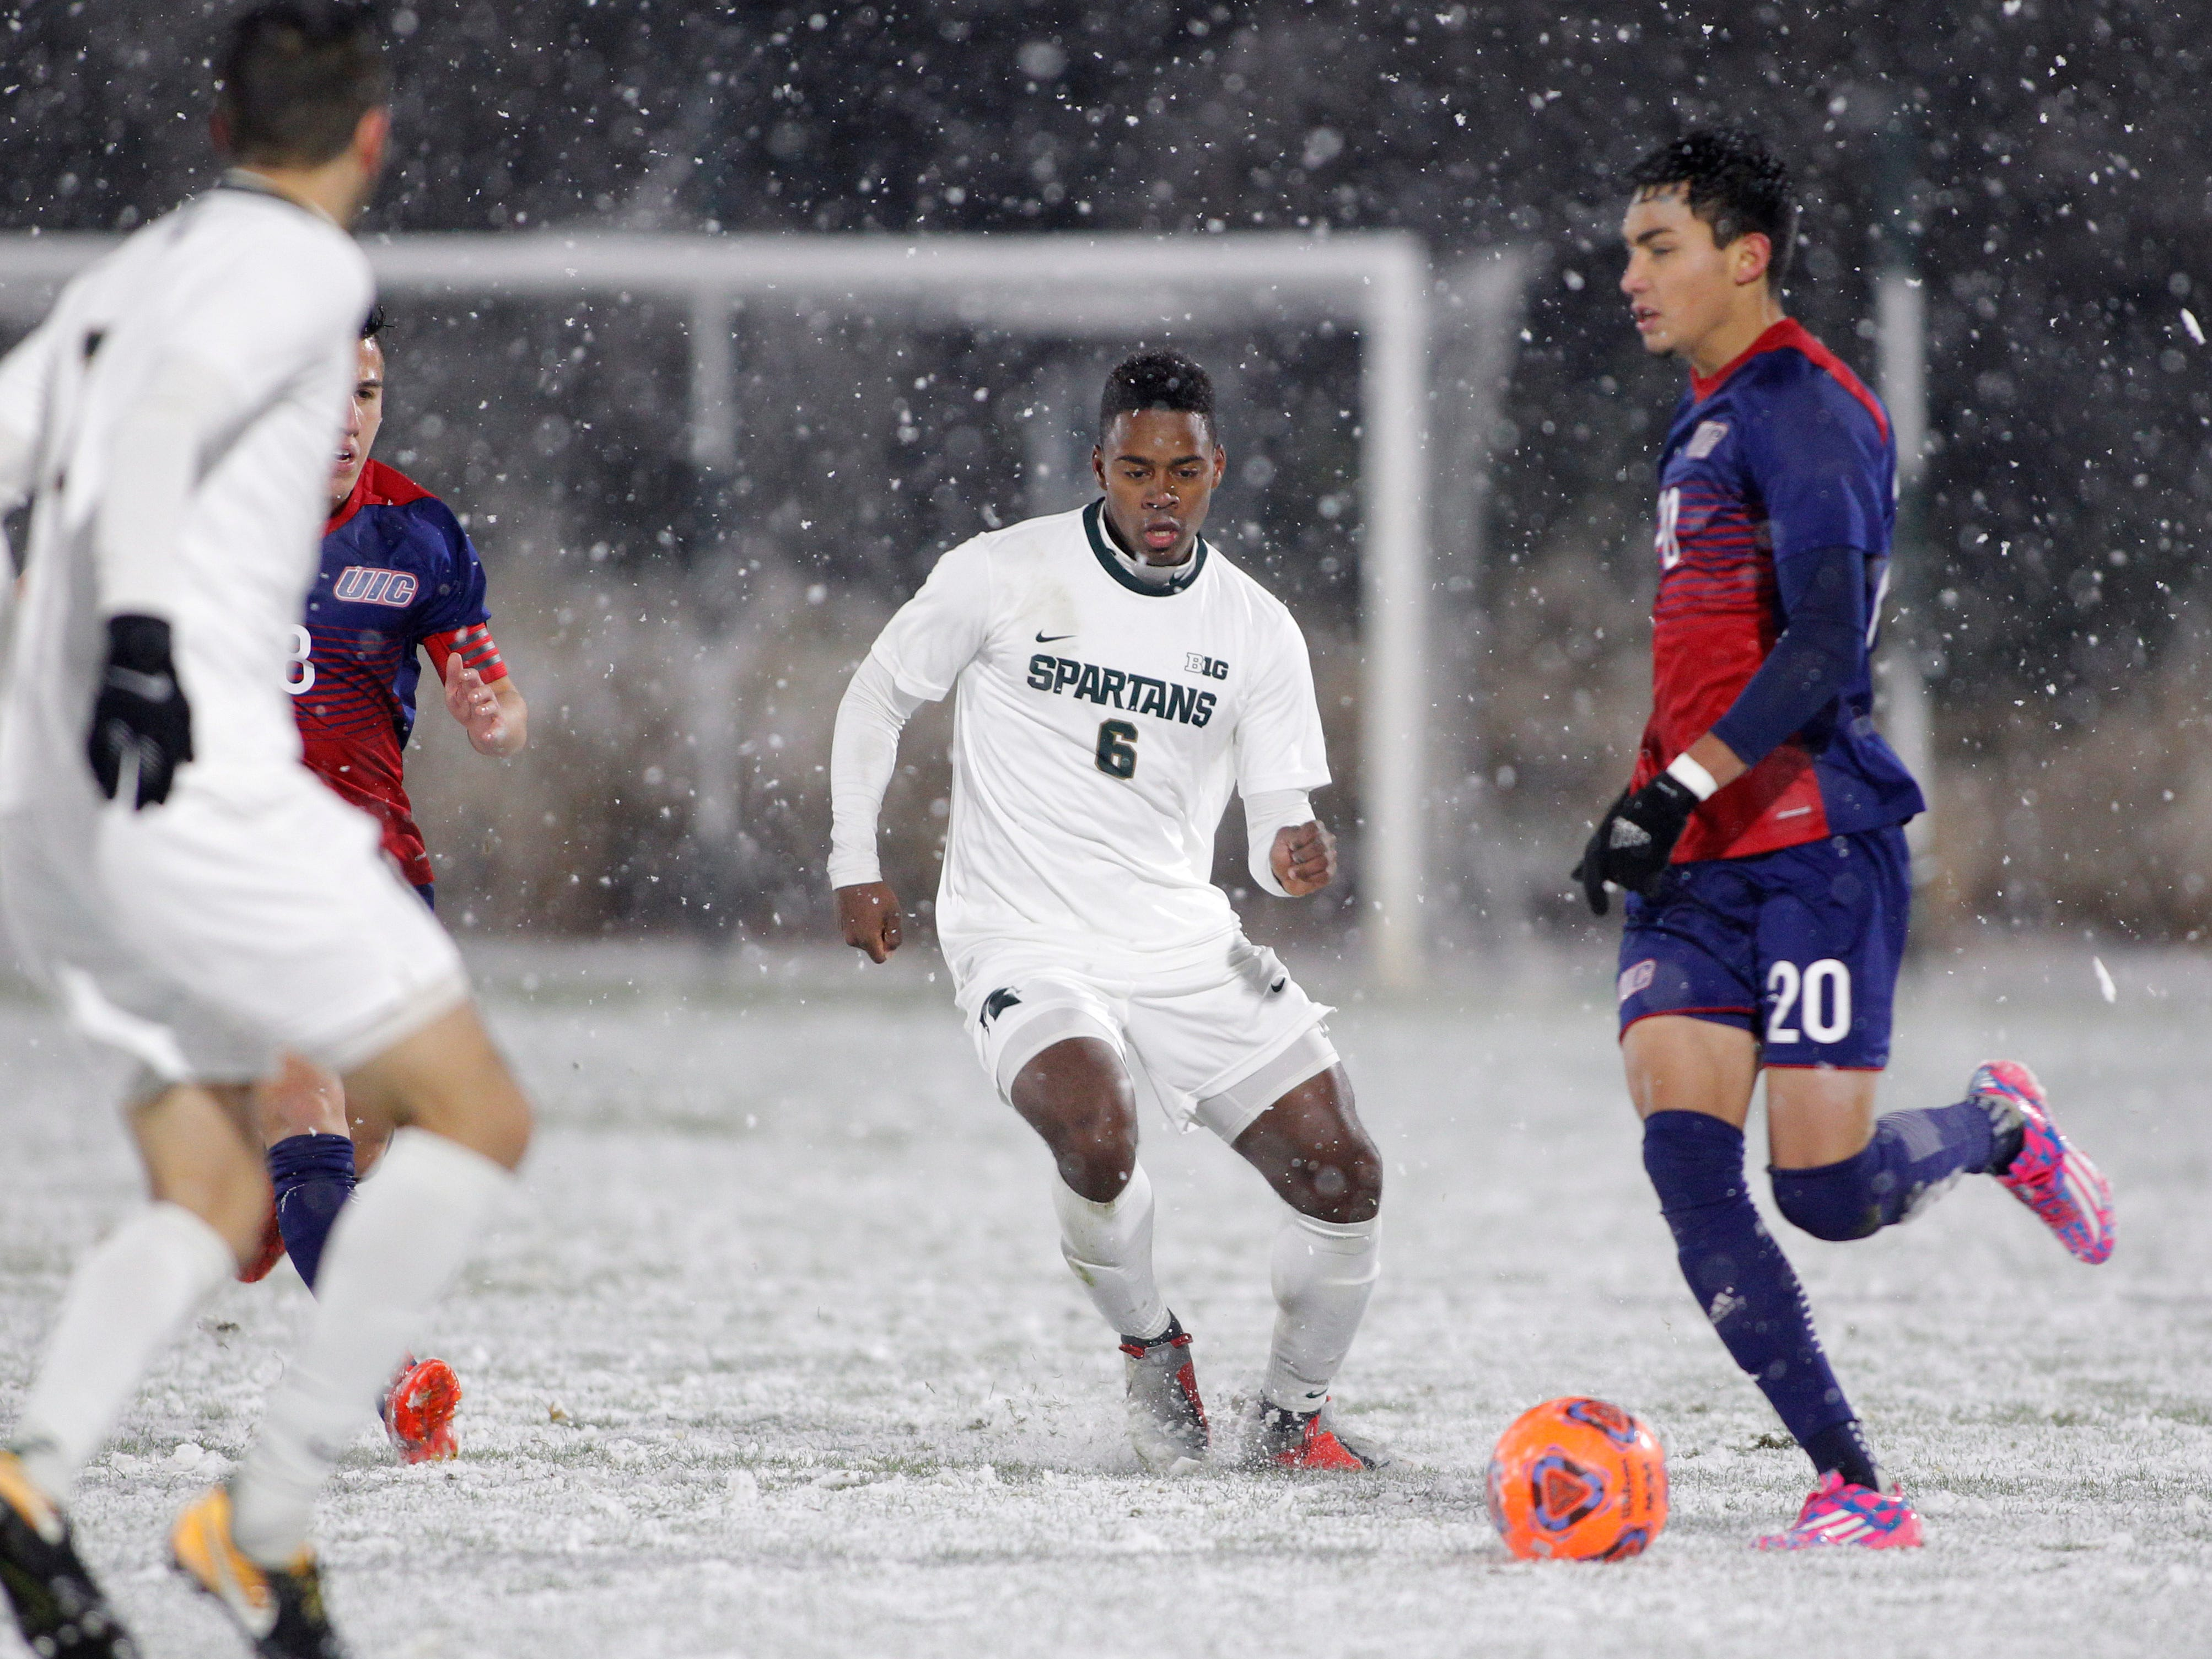 Michigan State's DeJuan Jones (6) passes the ball against Illinois-Chicago's Eduardo Garcia (20) and Oscar Gonzalez, left, during their NCAA first round game, Thursday, Nov. 15, 2018, at DeMartin Stadium in East Lansing, Mich. MSU won 2-0.